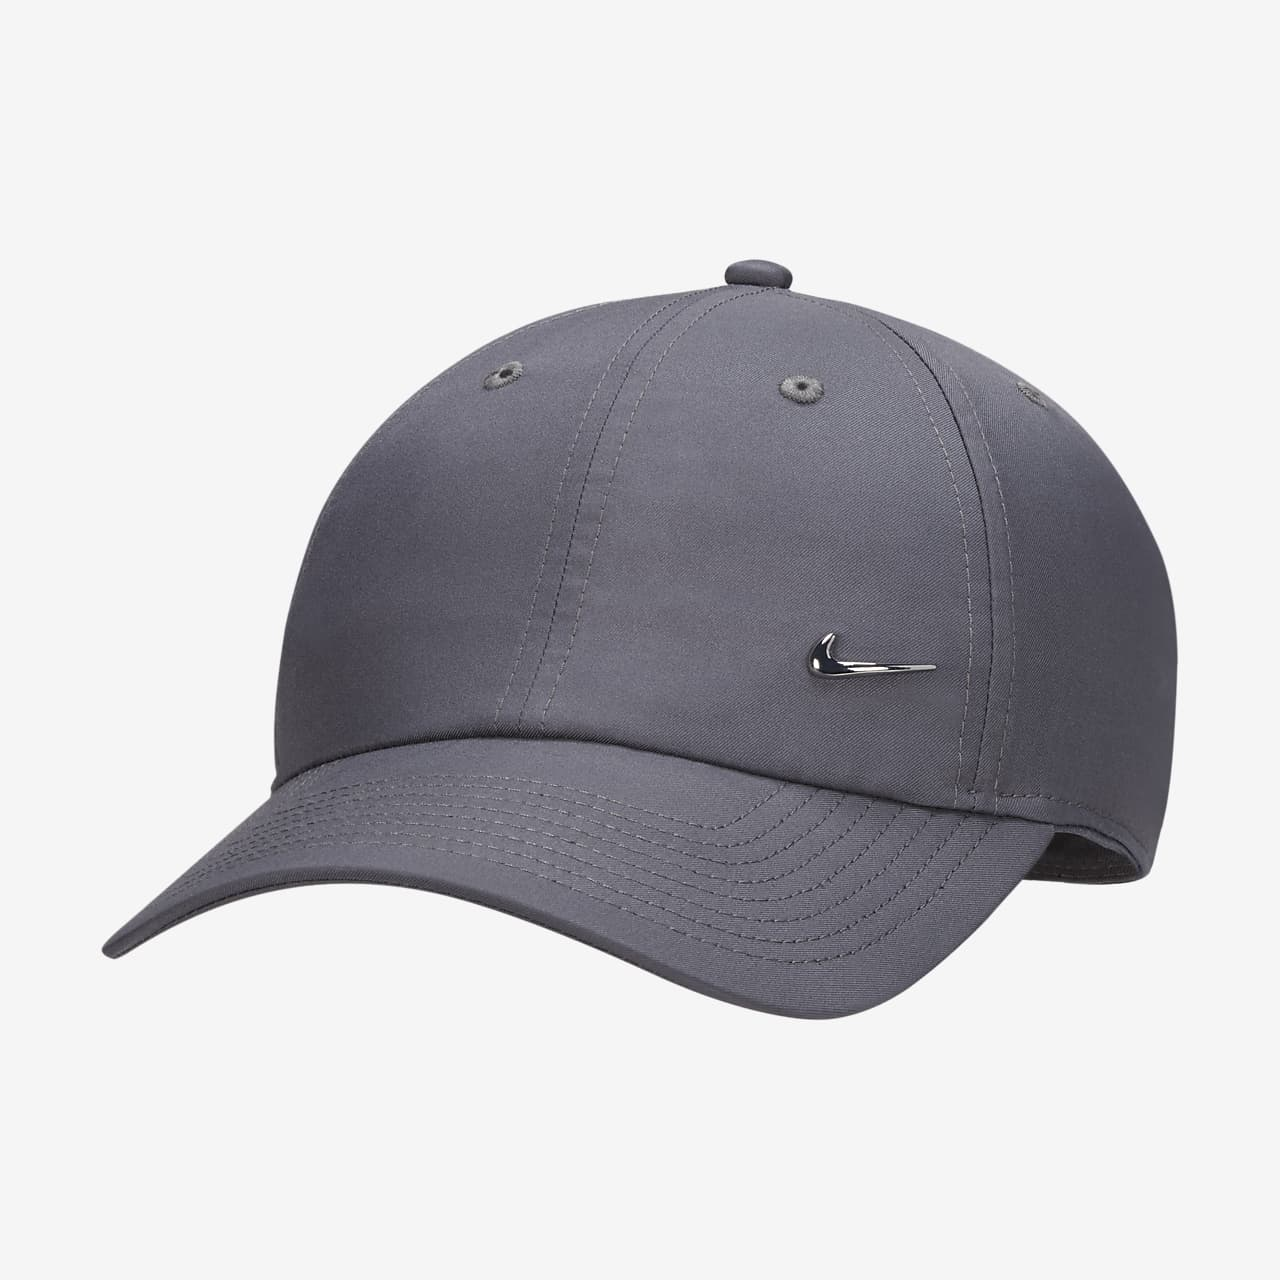 9583919fb Nike Metal Swoosh H86 Adjustable Hat